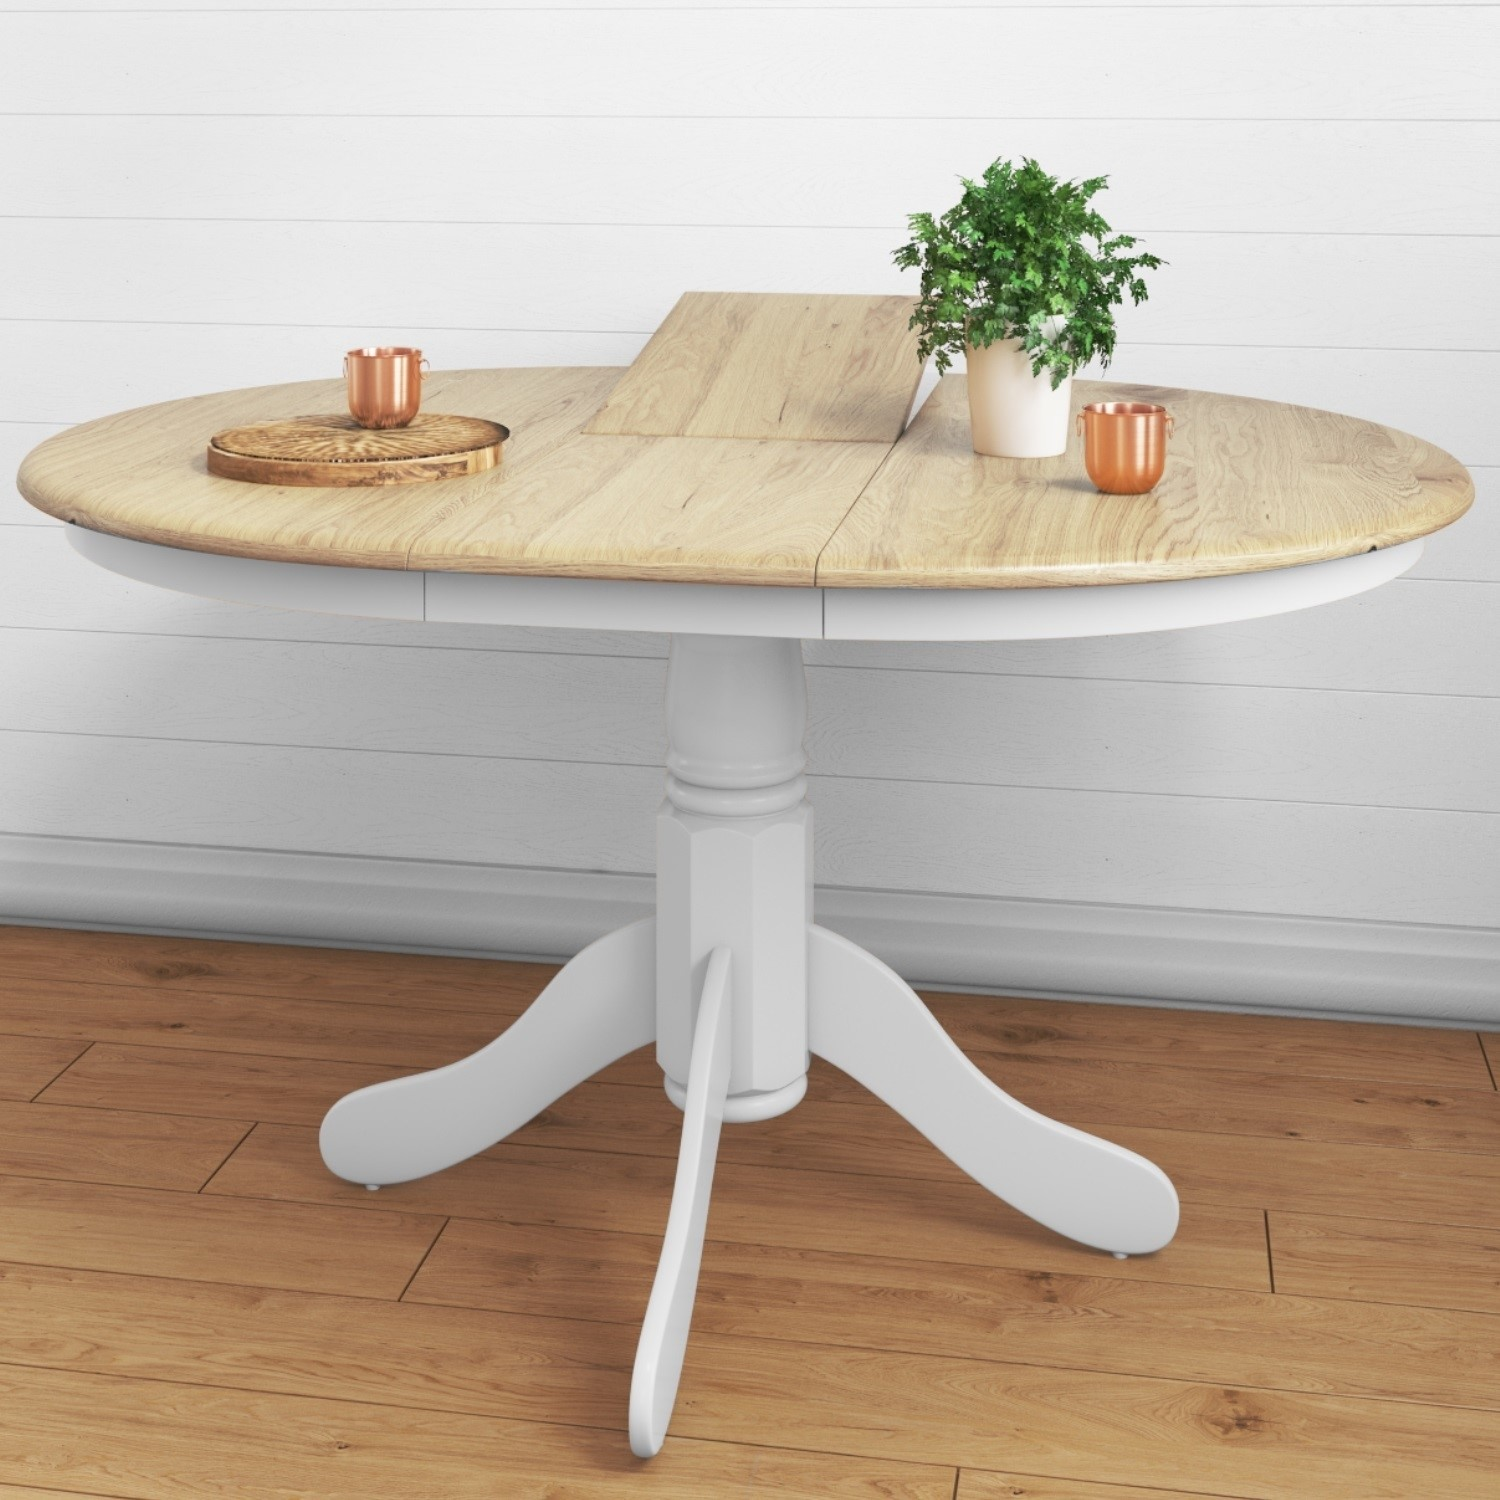 Round Extendable Dining Table In White Oak Effect Seats 6 Rhode Island Furniture123